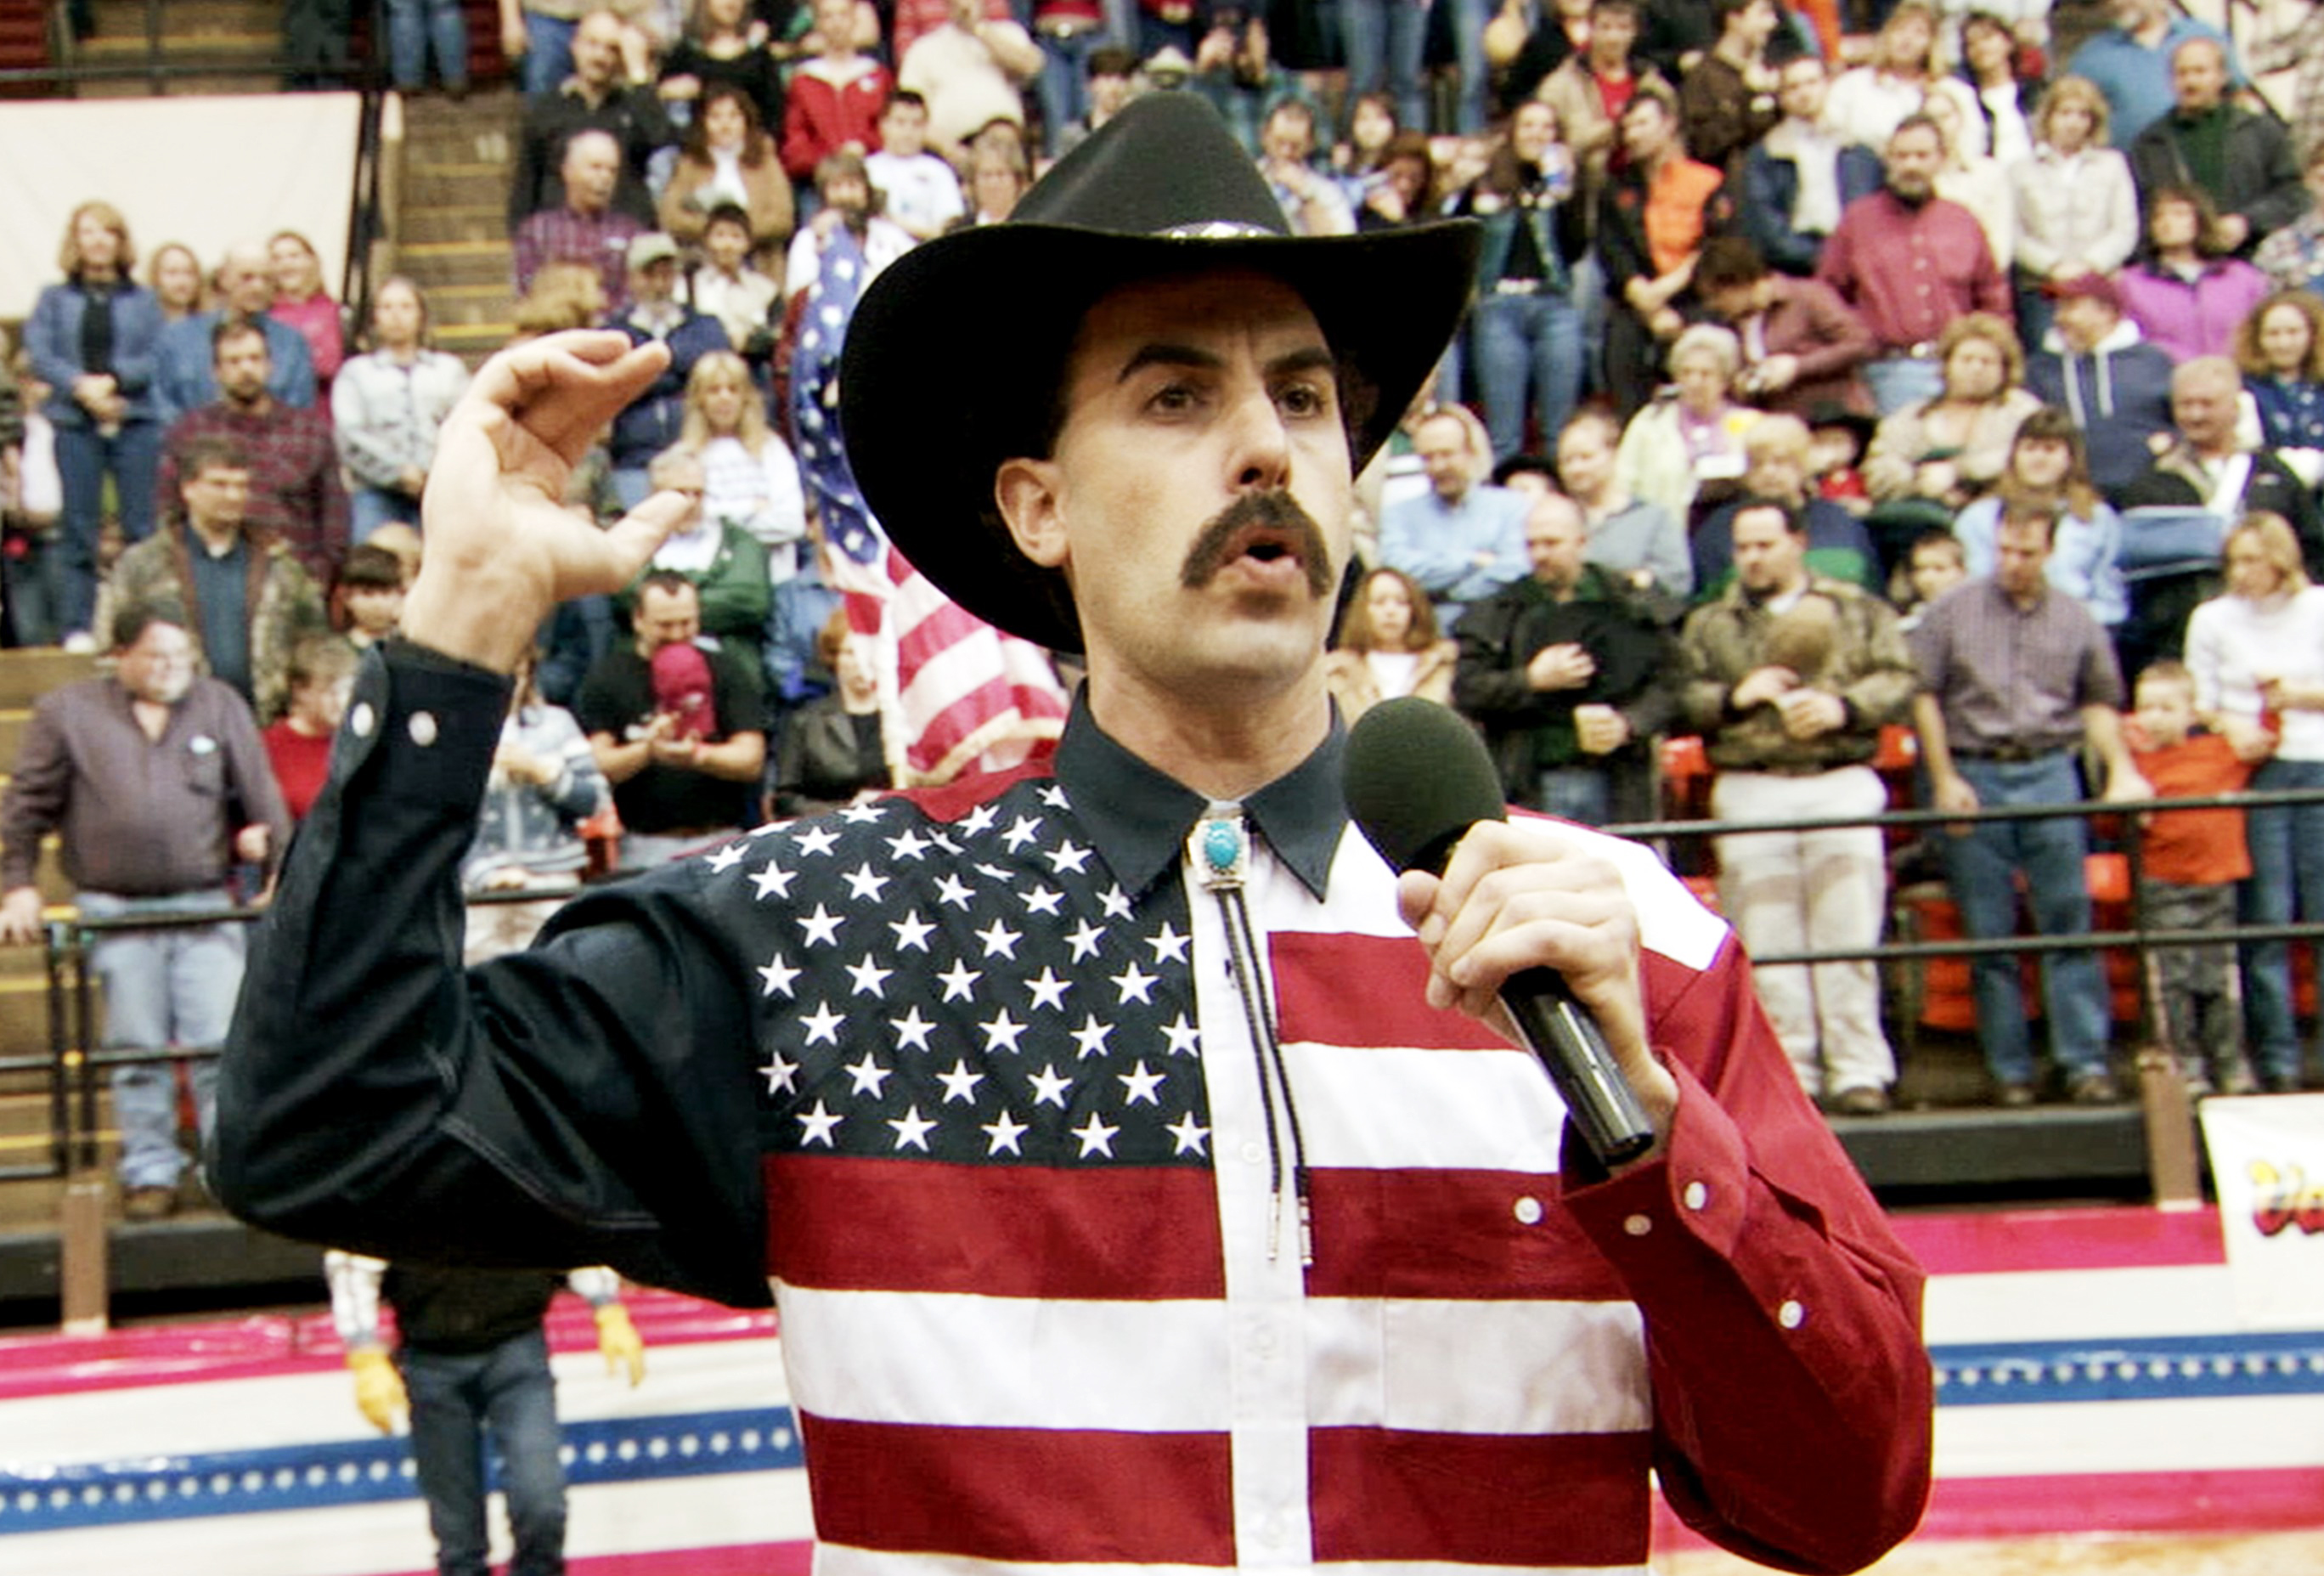 Sacha Baron Cohen as Borat in Borat: Cultural Learnings of America for Make Benefit Glorious Nation of Kazakhstan, 2006.